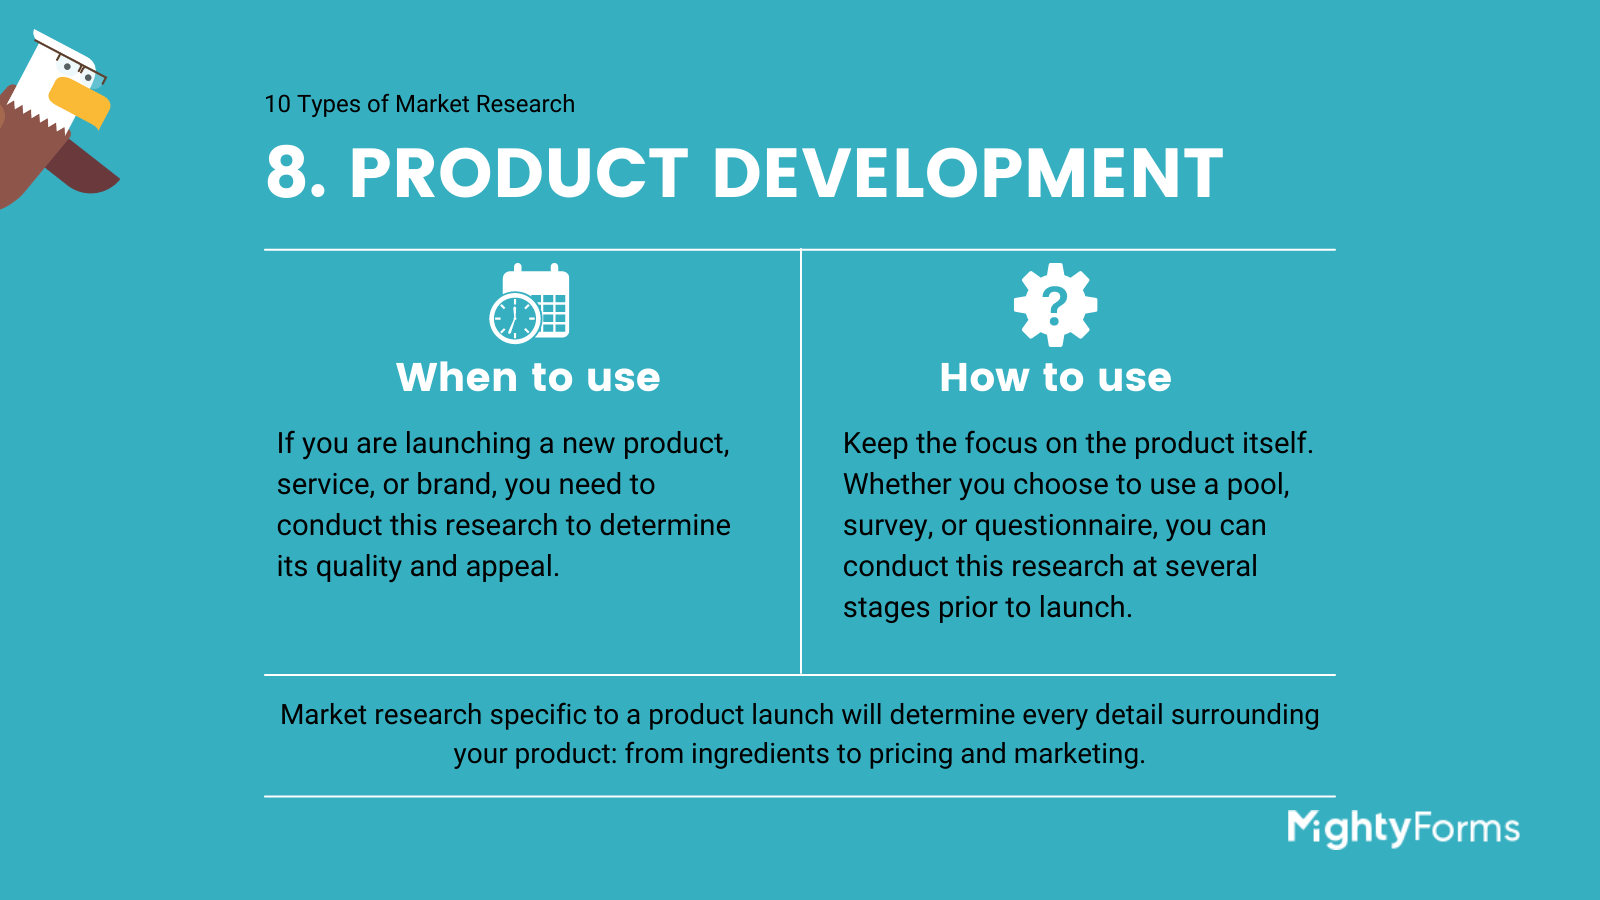 Types of Market Research - product development - infographic_ MightyForms